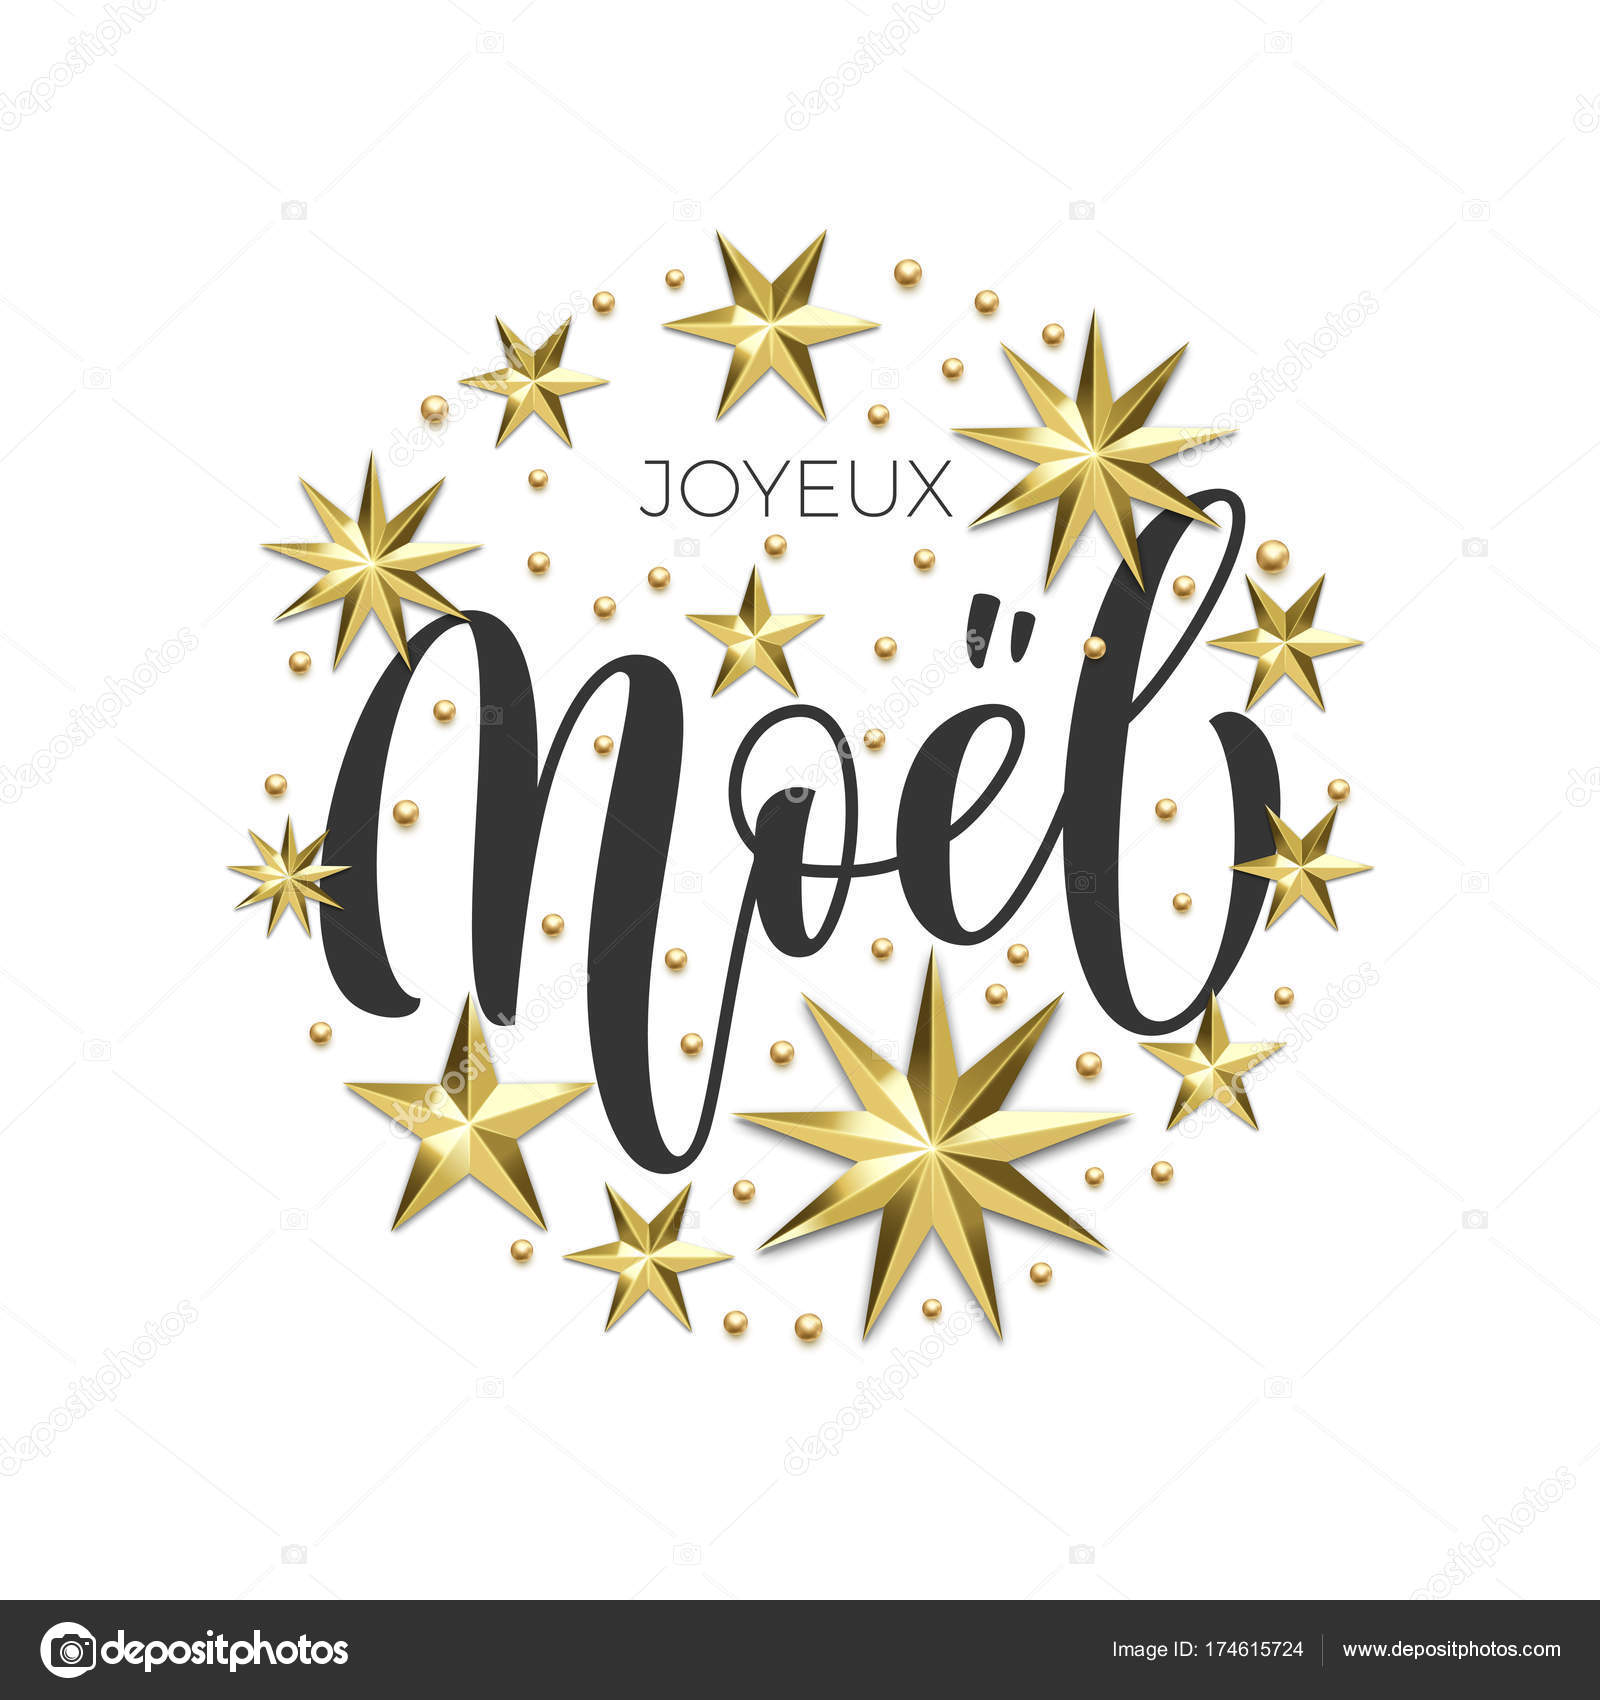 Joyeux noel french merry christmas holiday golden decoration joyeux noel french merry christmas holiday golden decoration calligraphy font for greeting card or invitation on white background vector christmas or new stopboris Gallery